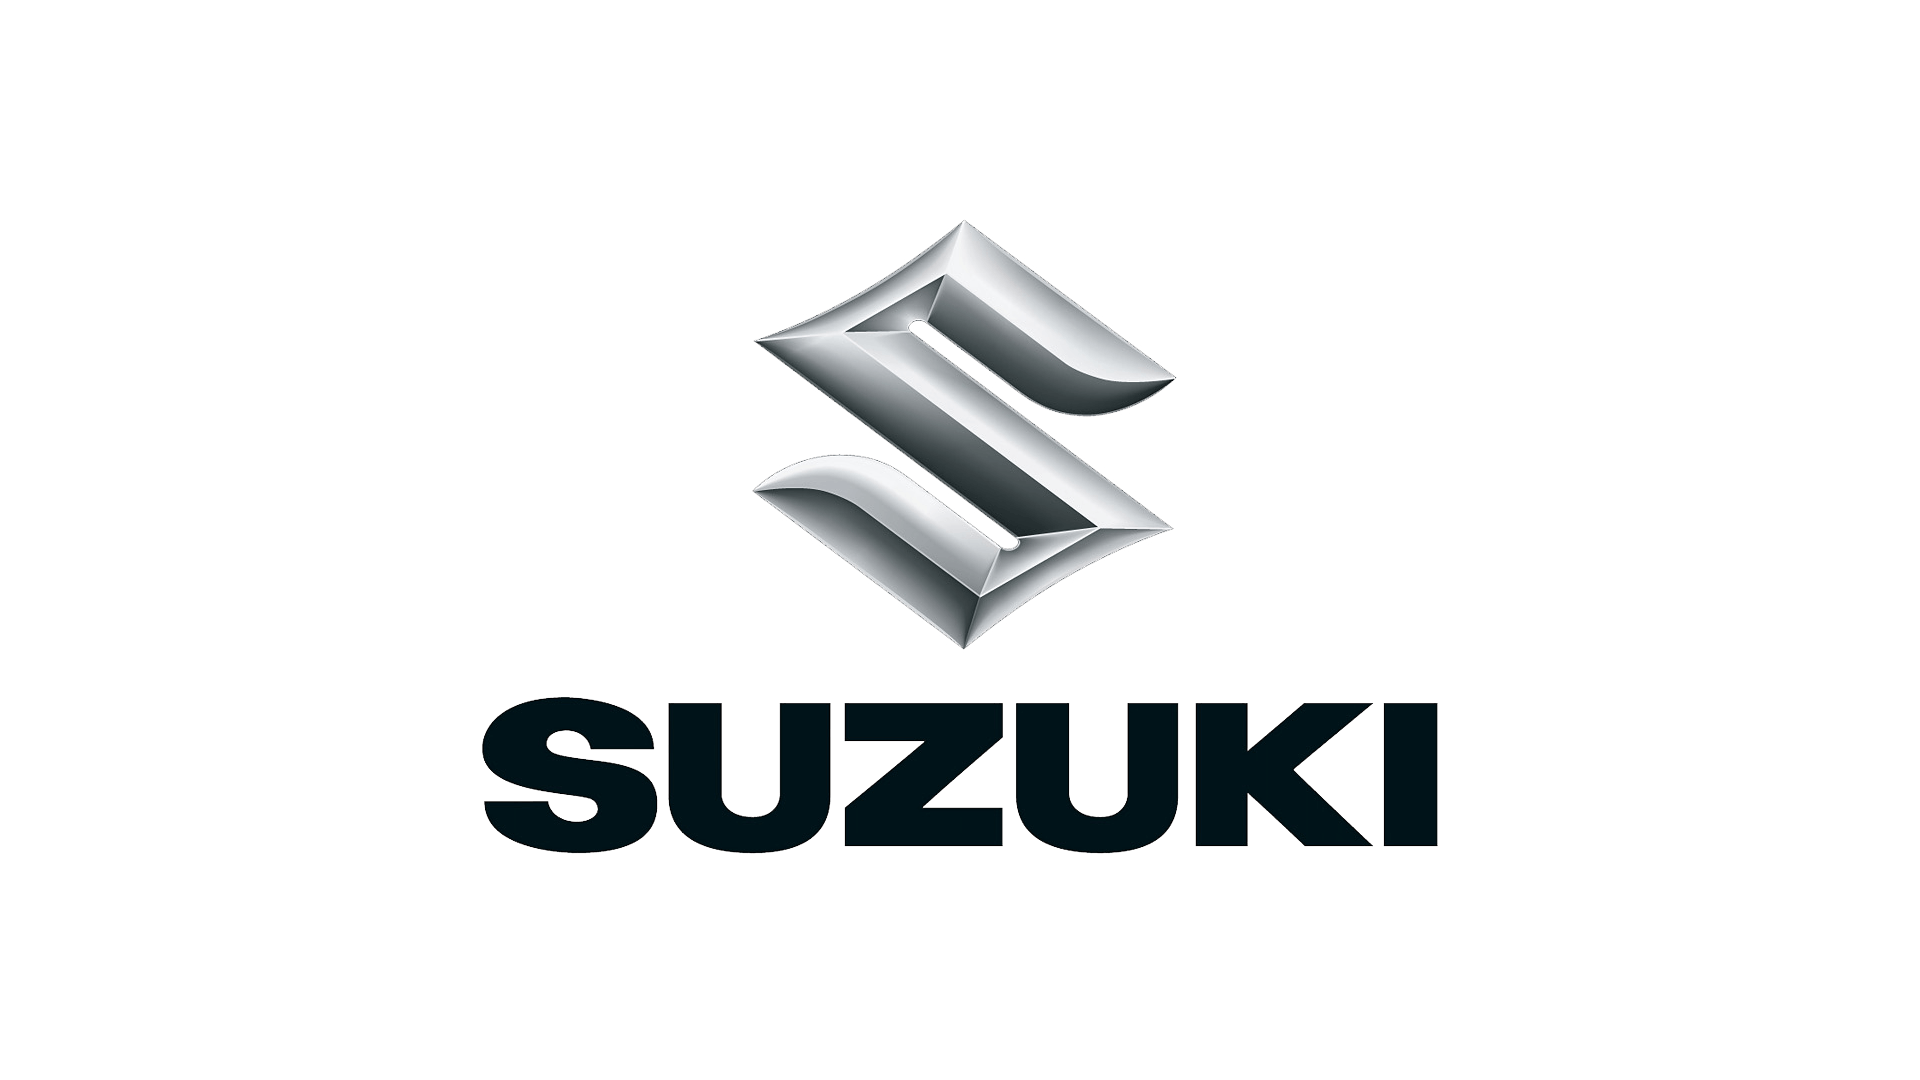 Suzuki Logo Wallpapers - Wallpaper Cave